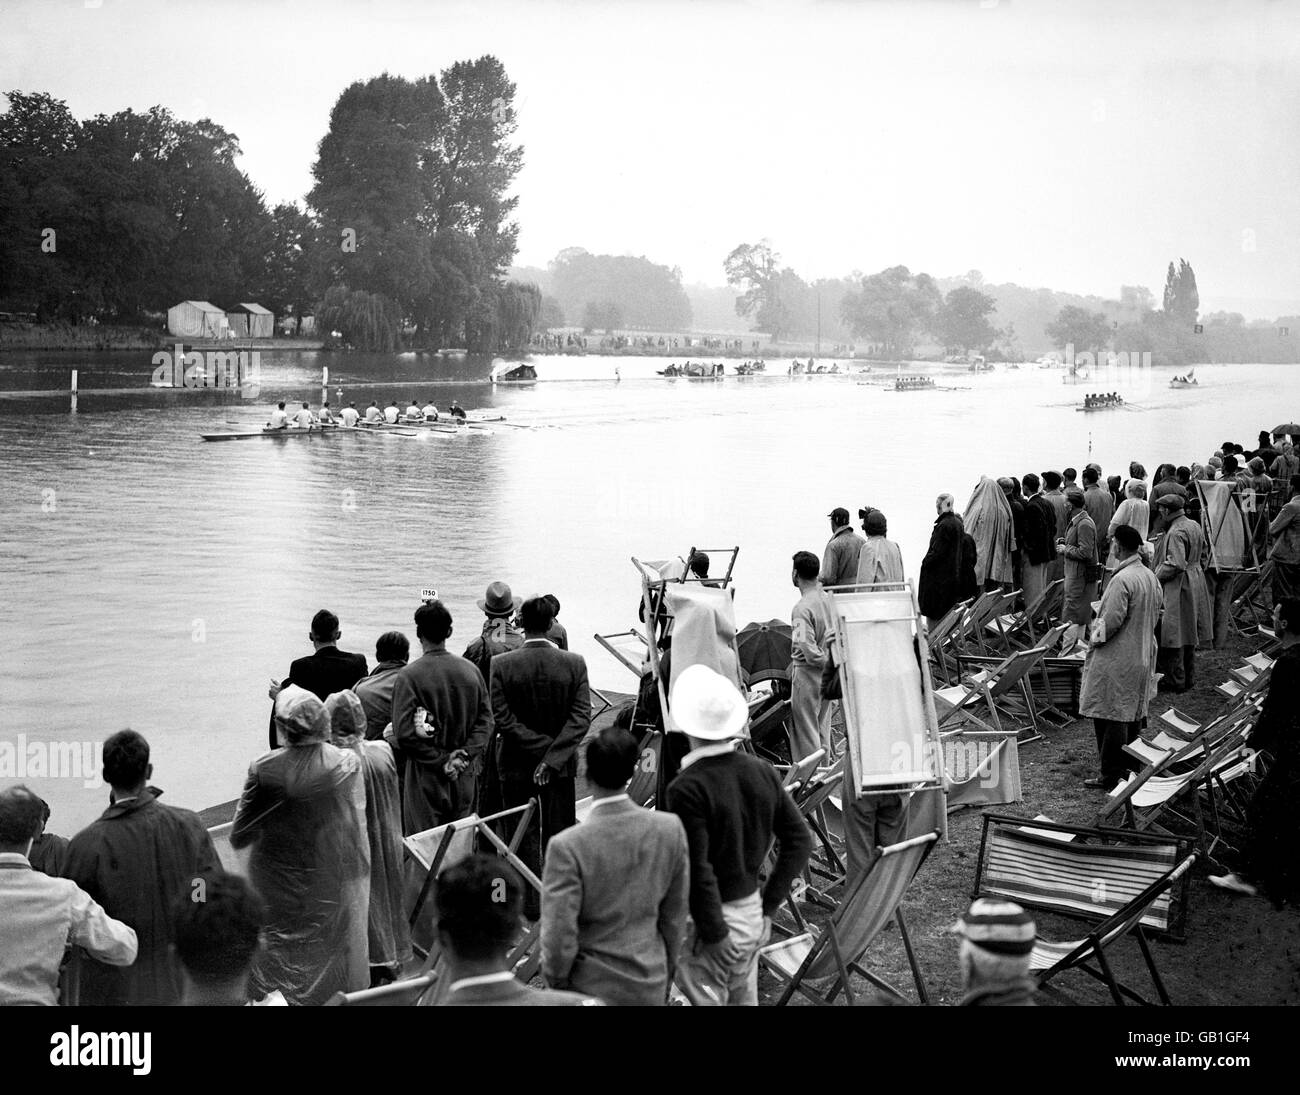 London Olympic Games 1948 - Rowing - Henley Stock Photo - Alamy